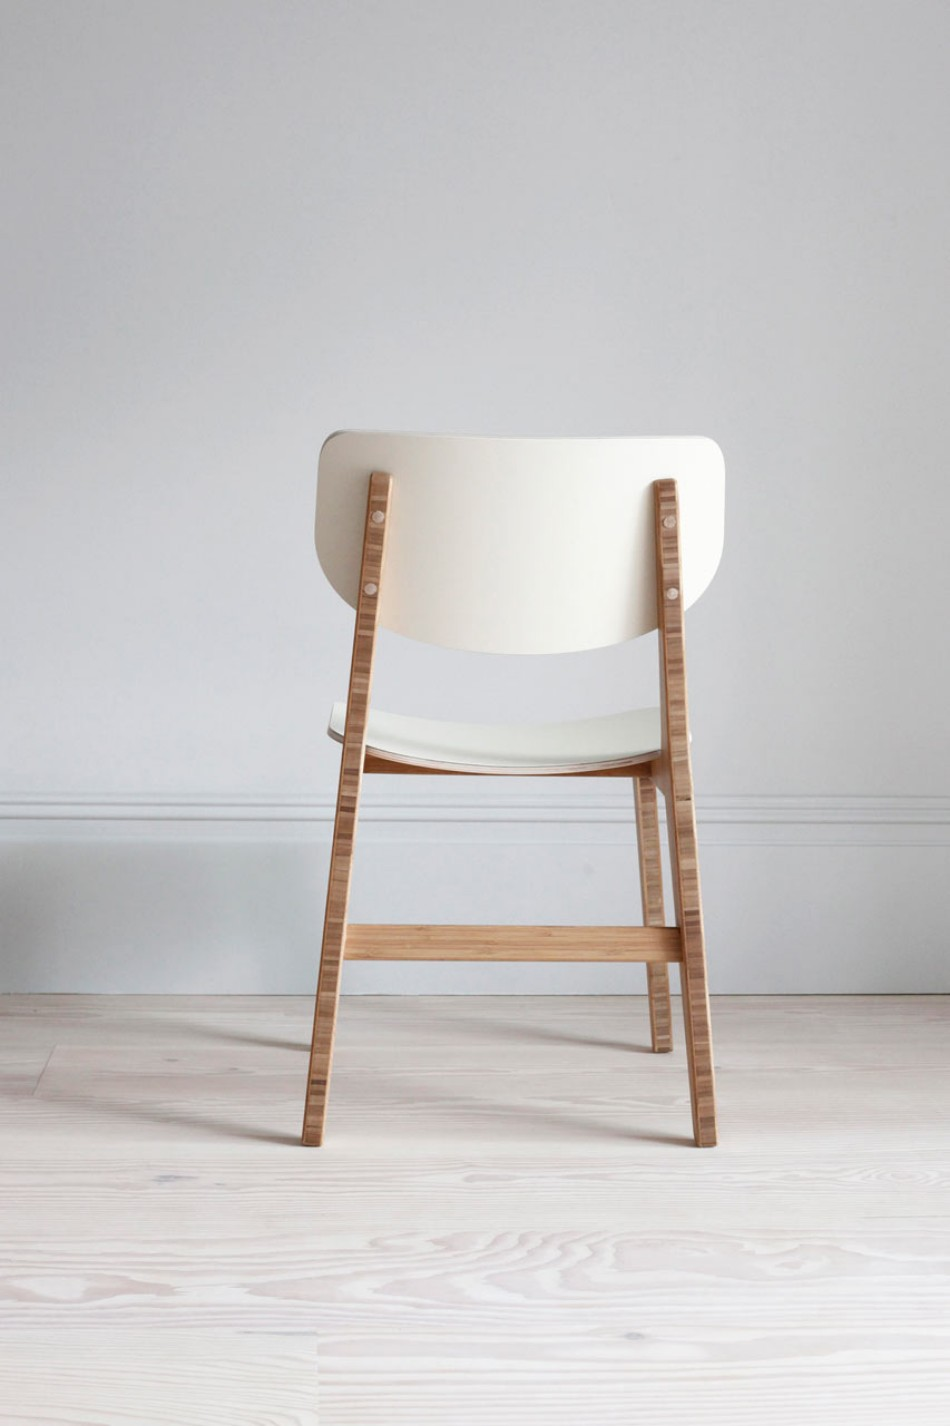 Go Green: Meet The Renewable and Ecological Amazing Dining Chair Renewable Dining Chair Go Green: Meet The Renewable Dining Chair Alex Chair5